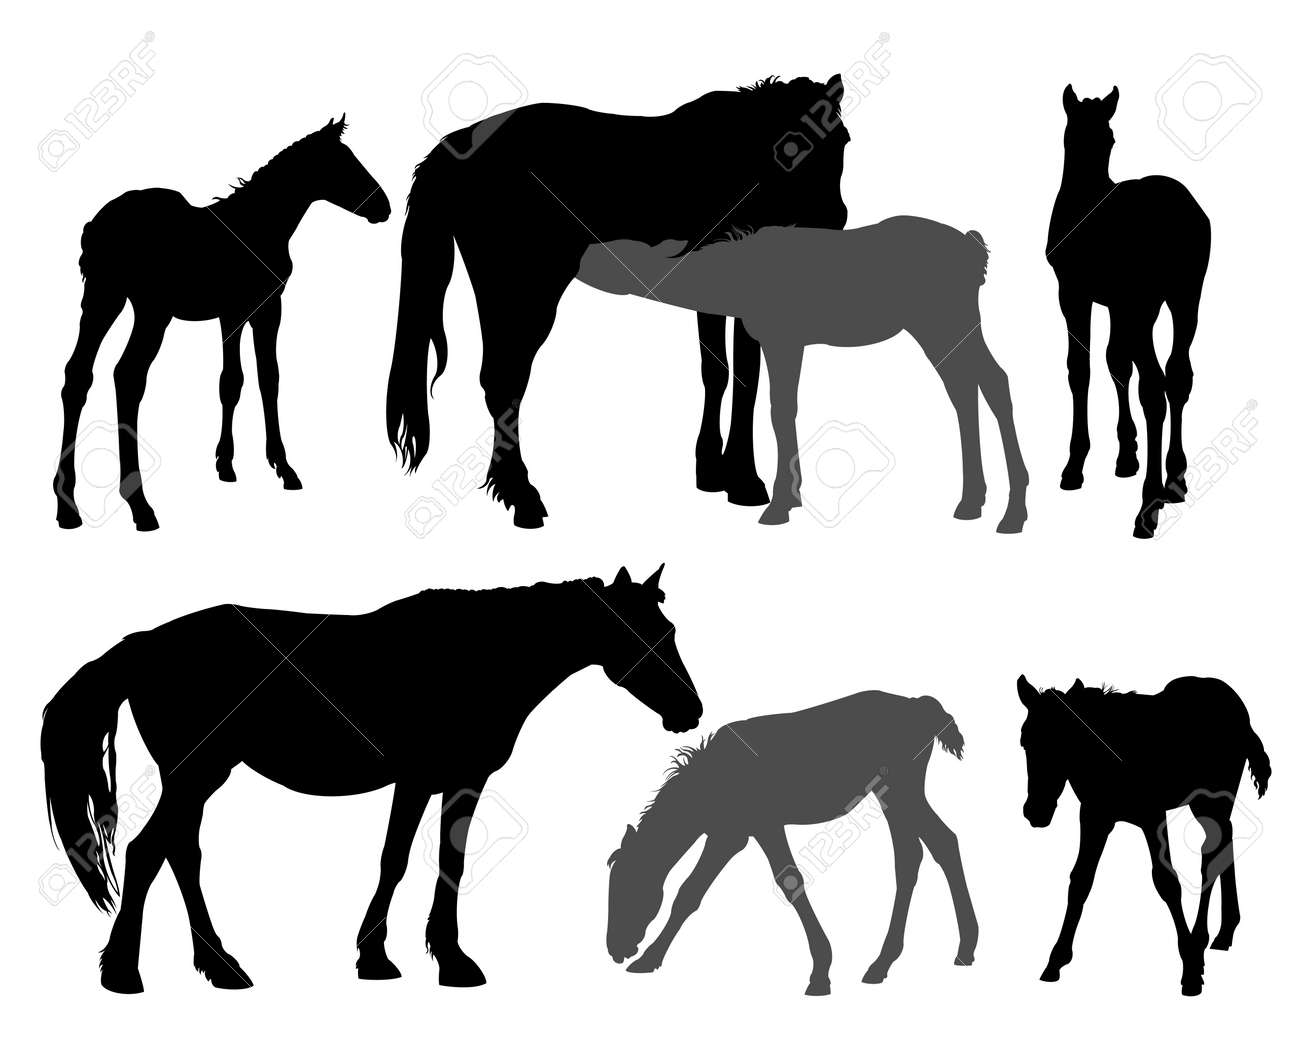 Horses silhouettes Stock Vector - 6192141